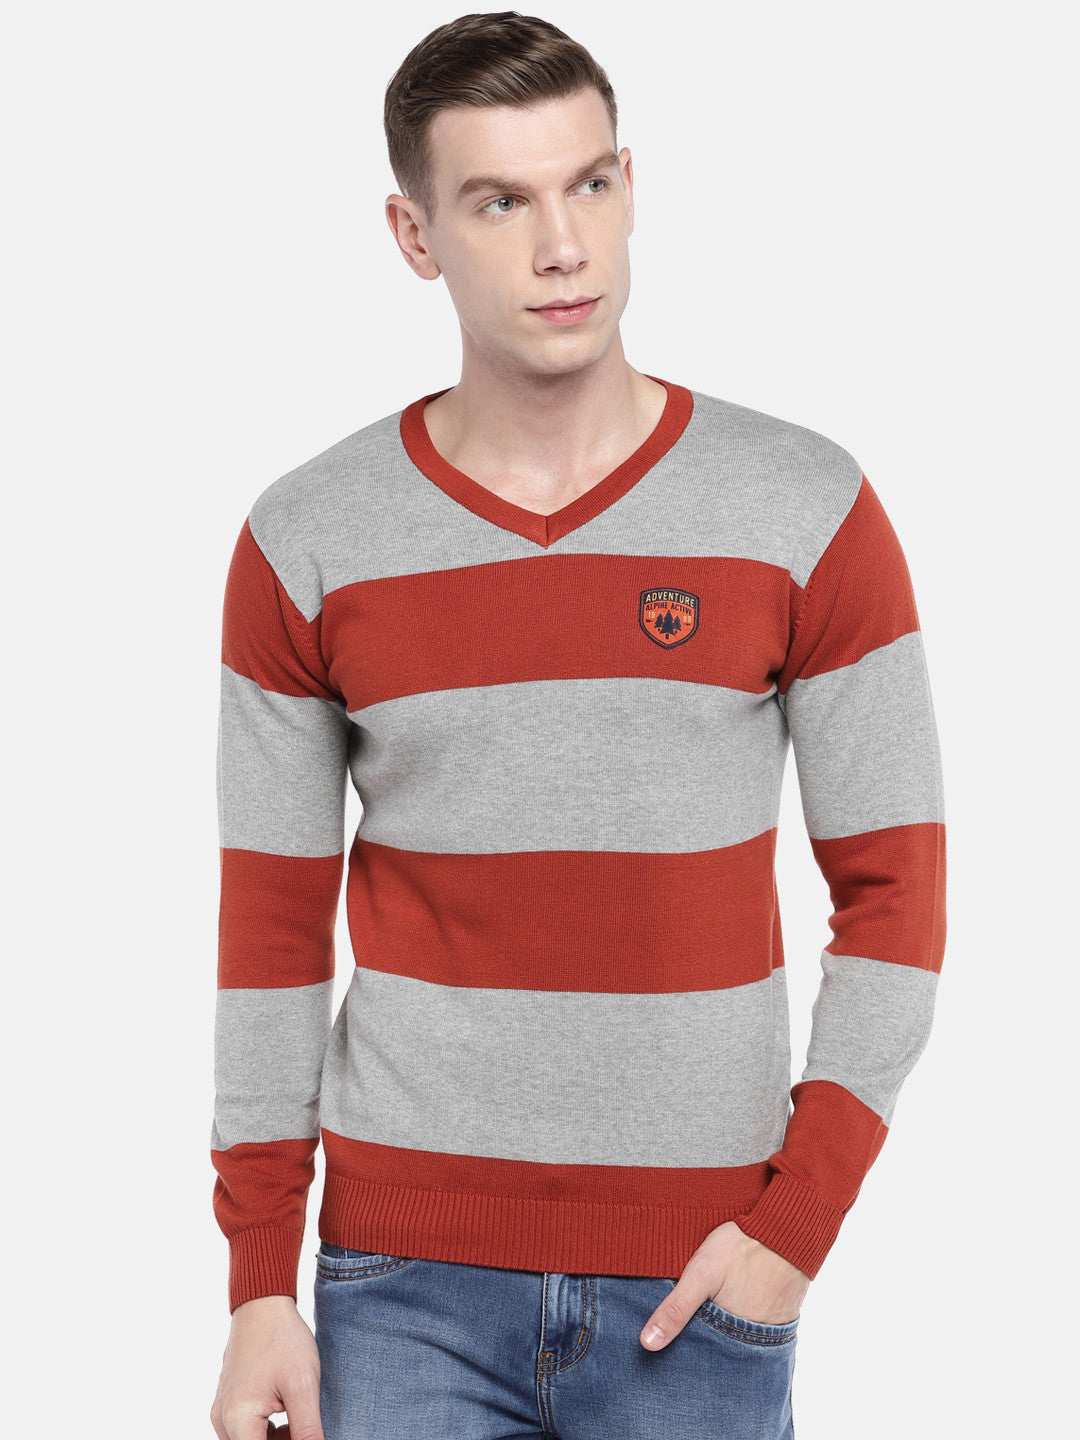 Rust Orange & Grey Striped Sweater-1